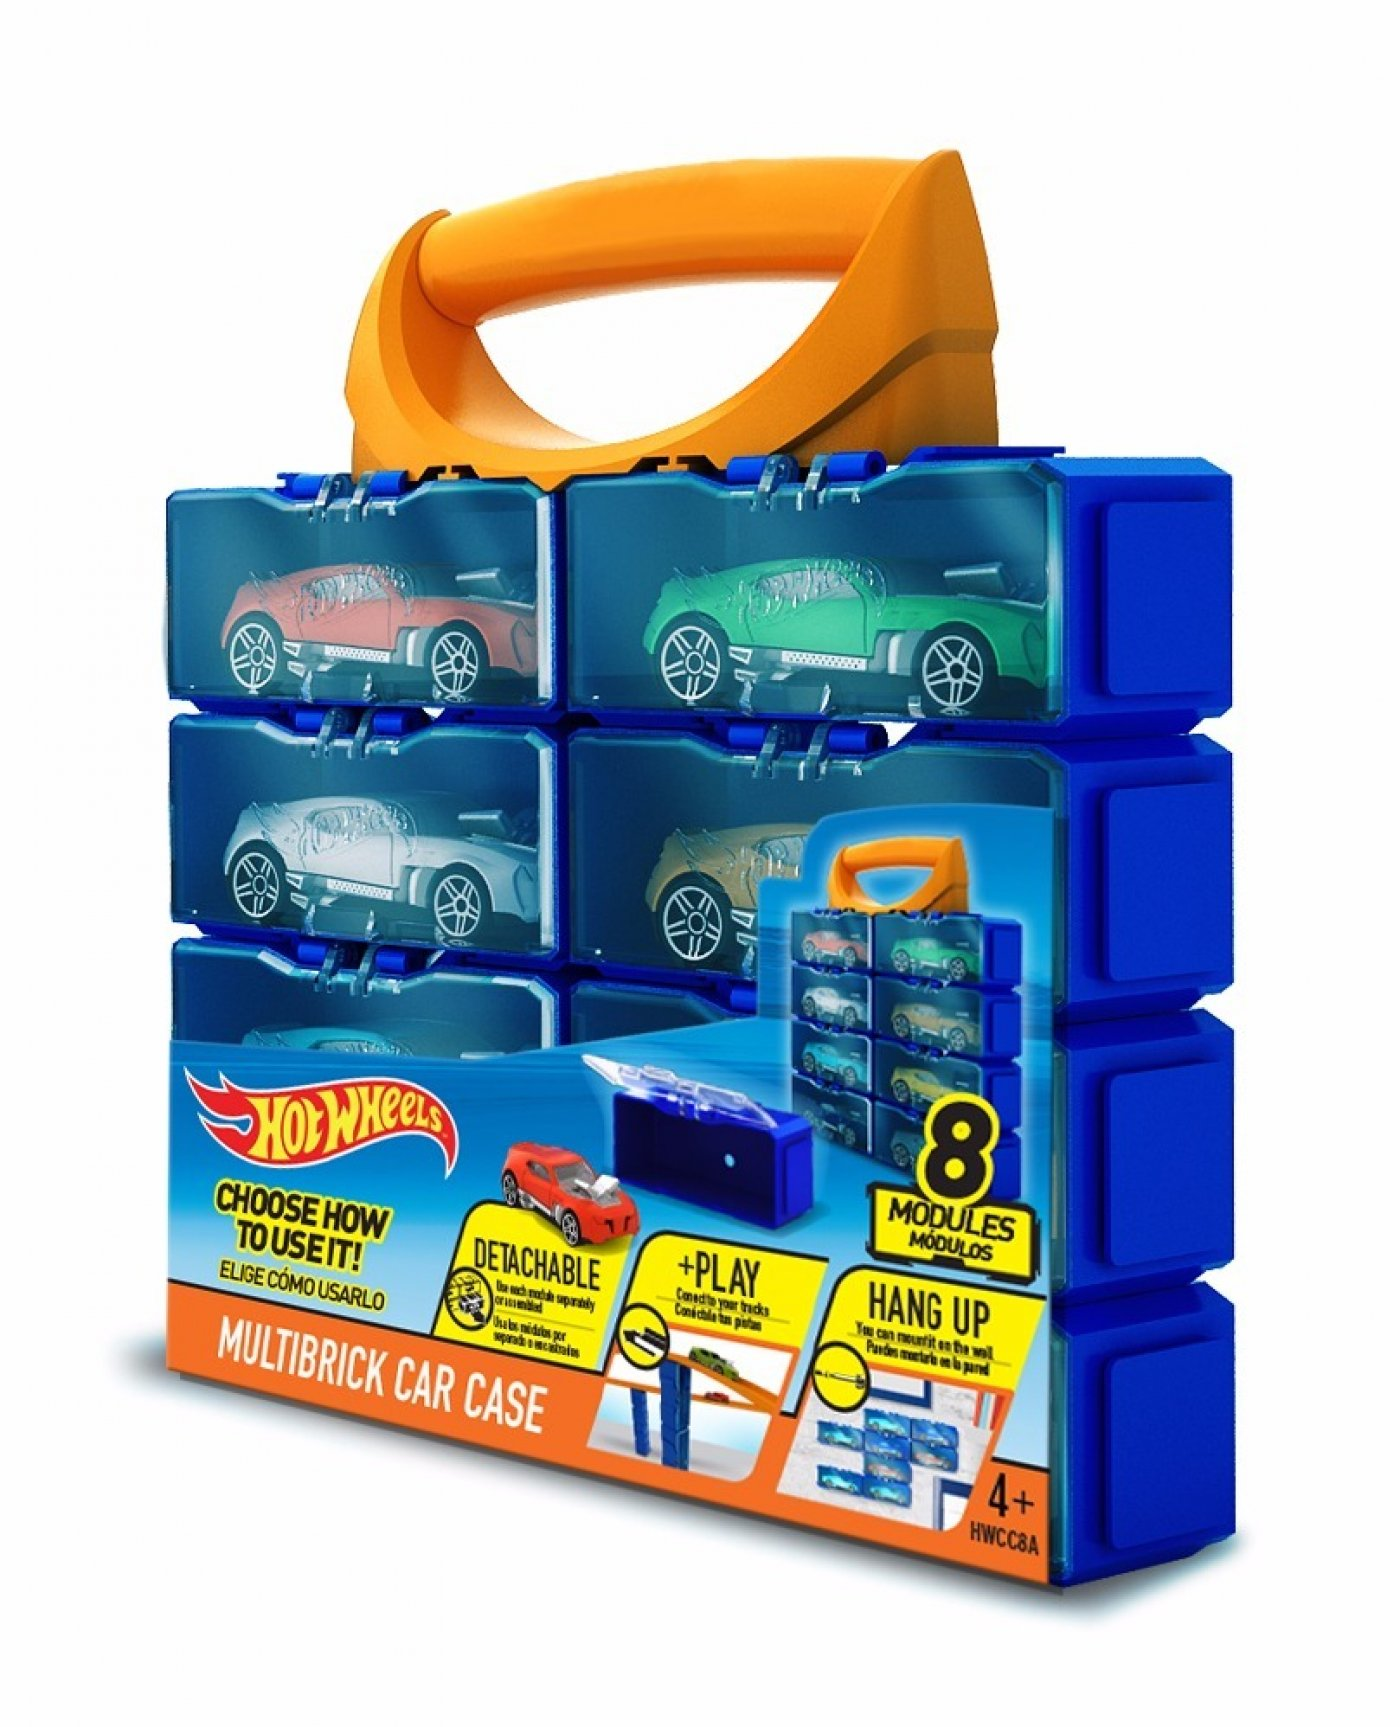 Hot Wheels Multibrick Car Case - 8 Modulos